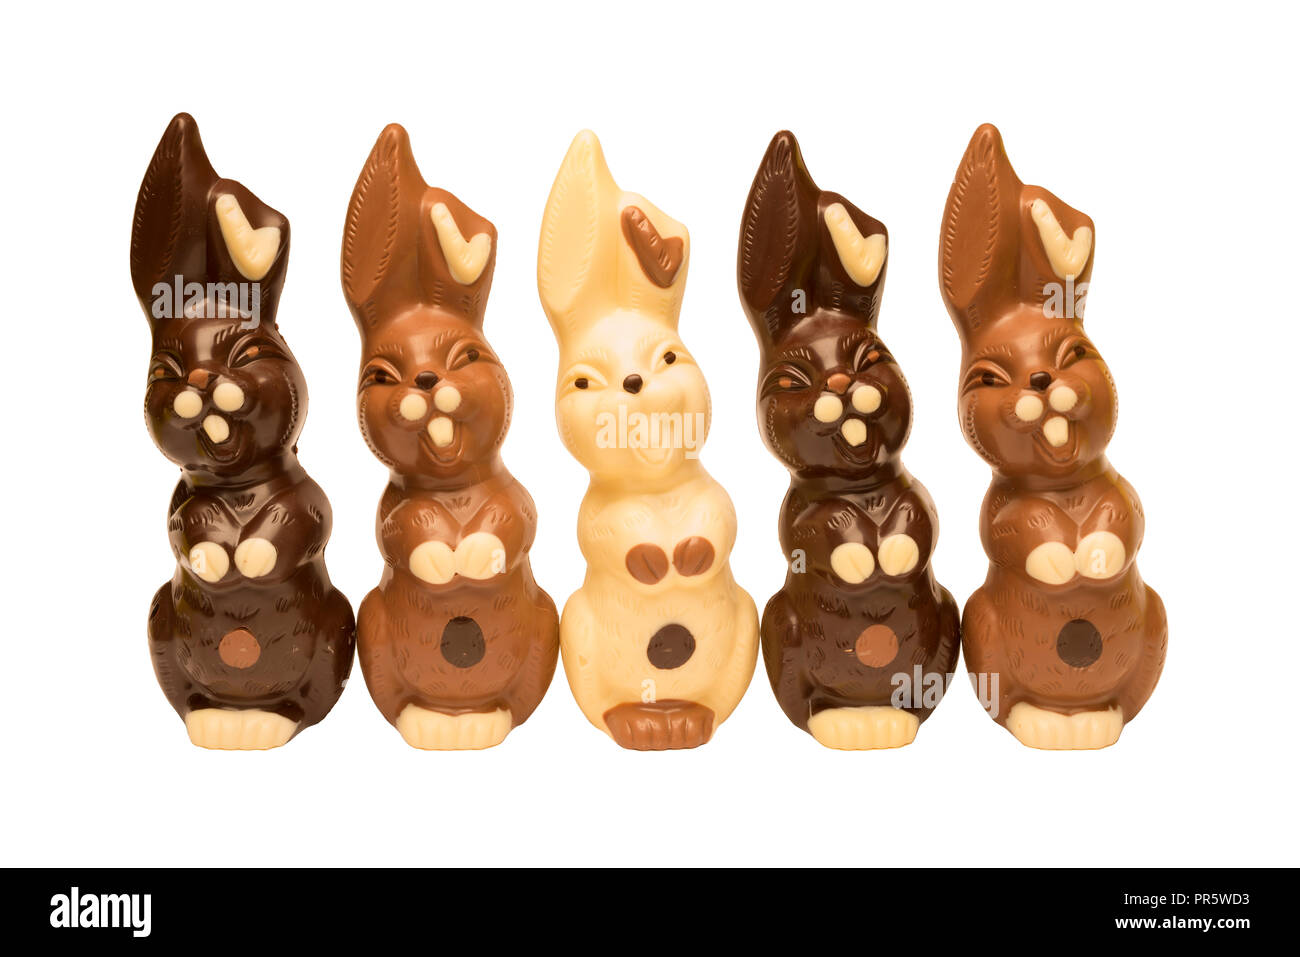 Five happy Easter bunnies in a row, isolated on a white background. Stock Photo